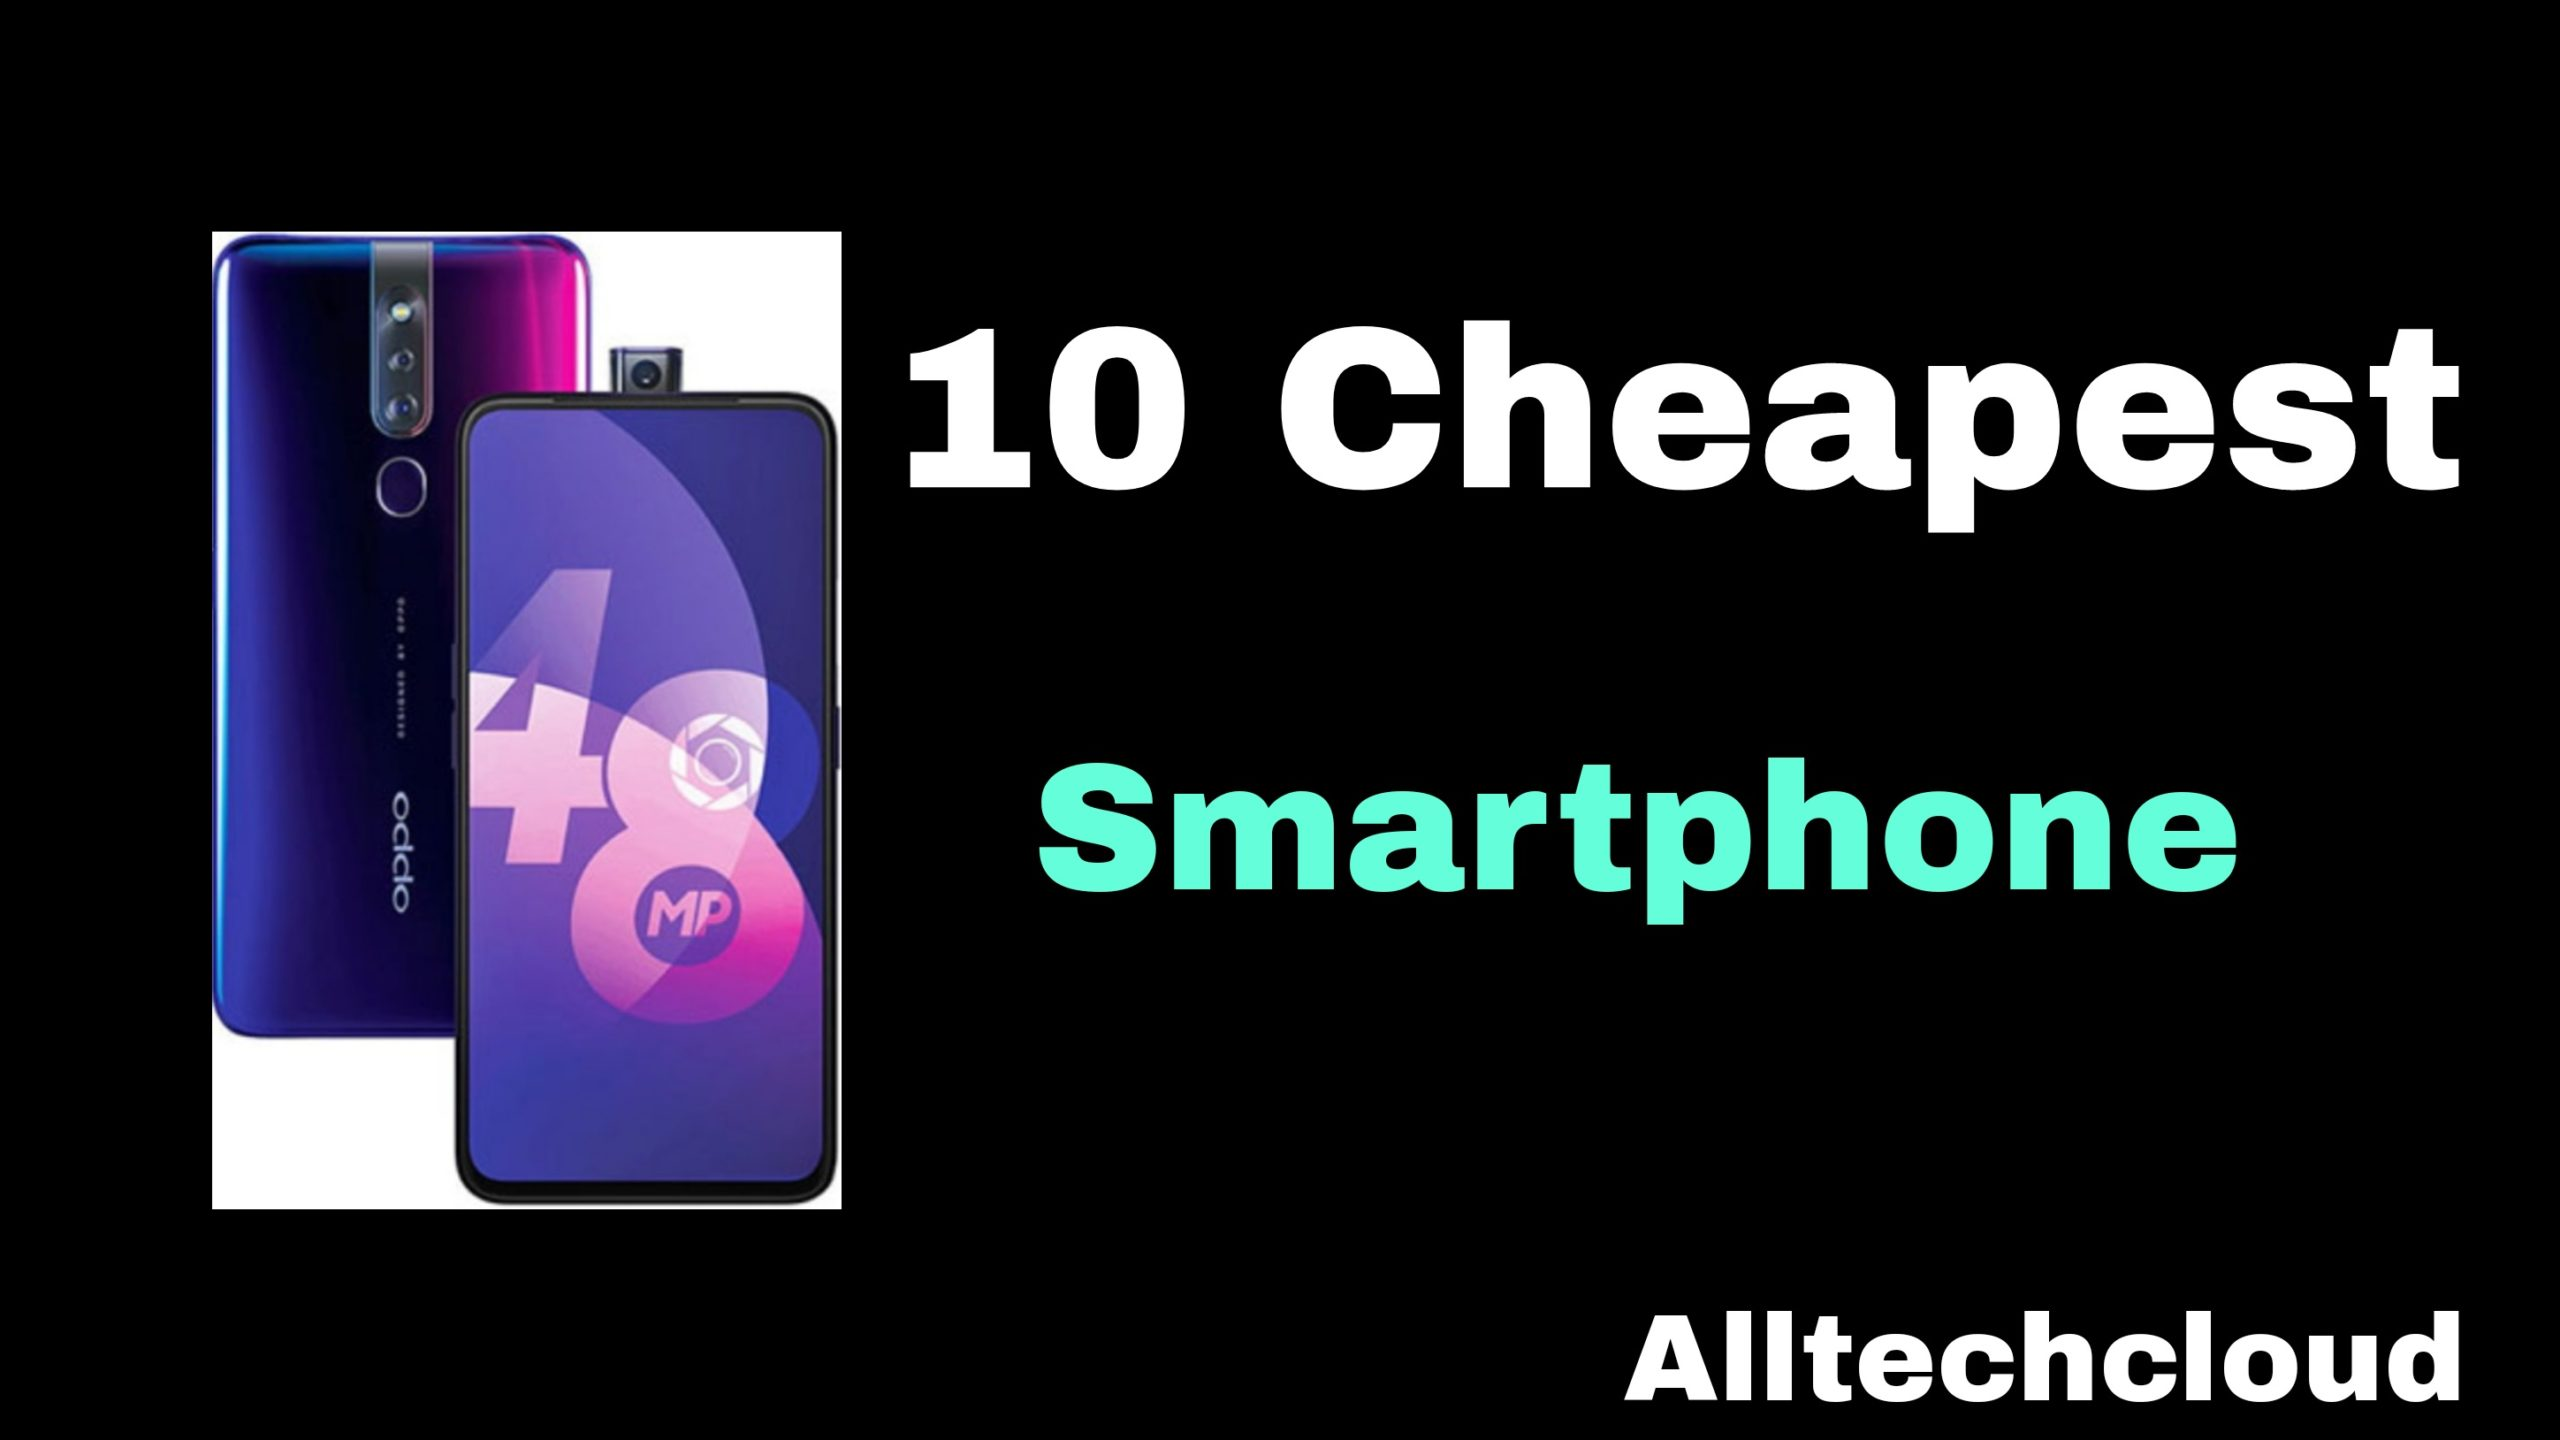 10 Cheapest Best Smartphone 2021 in The World